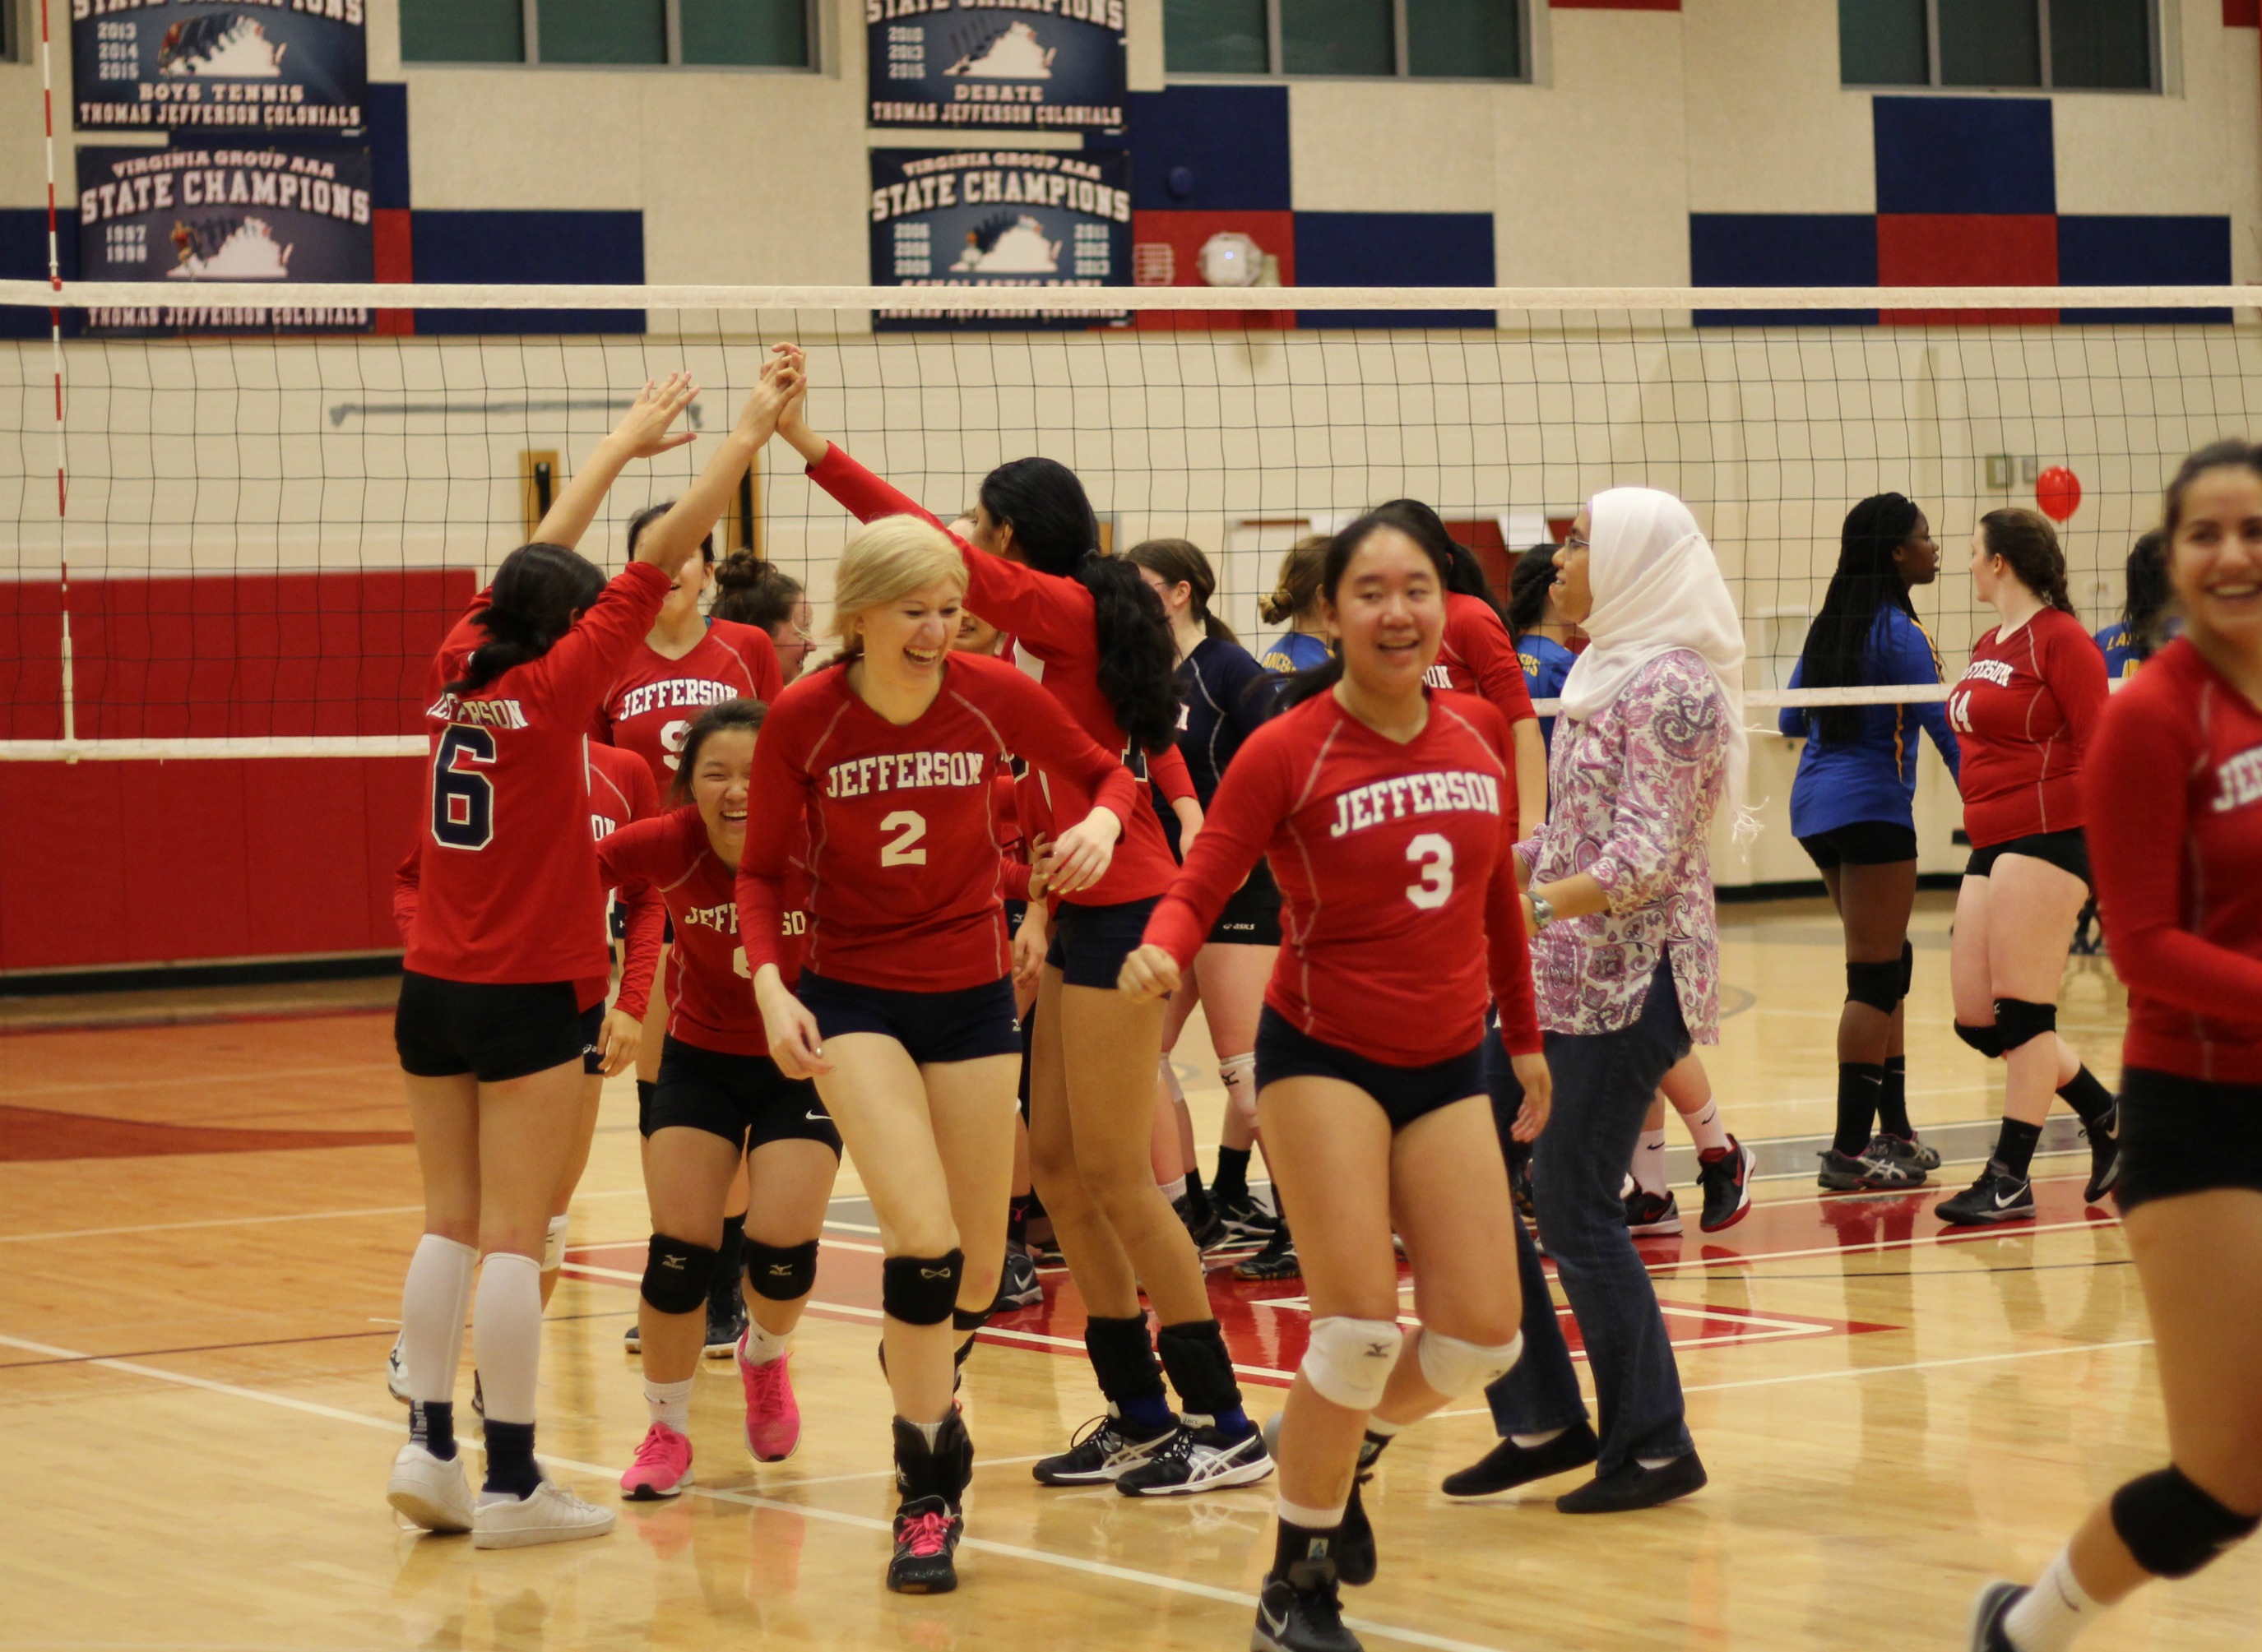 The+varsity+volleyball+team+smile+as+the+run+by+JV+volleyball+members+cheering+them+on+after+their+win.